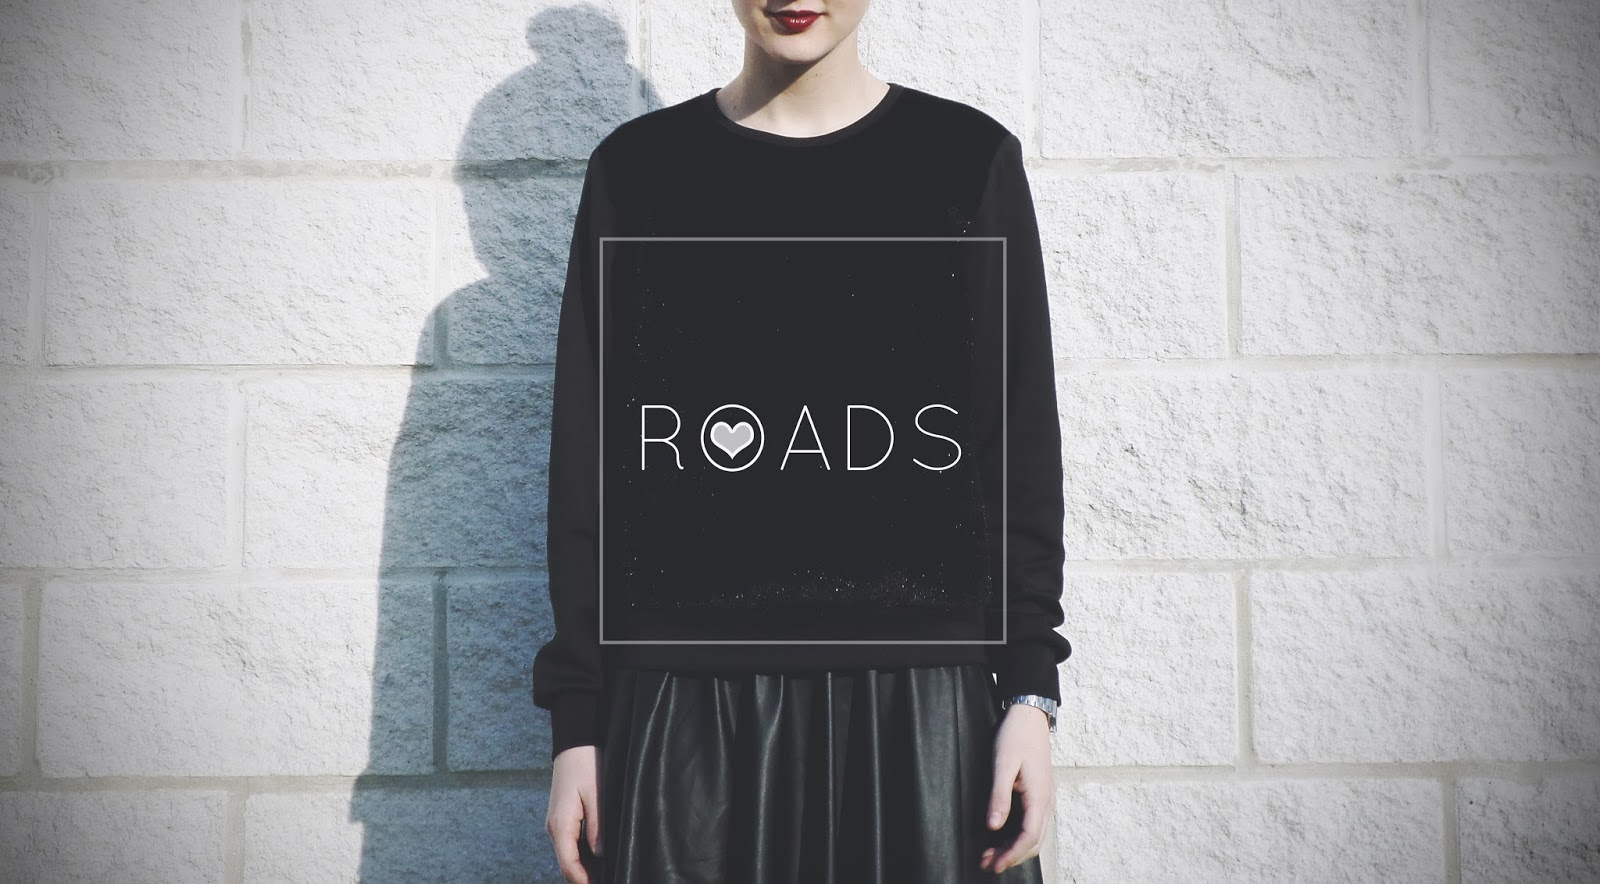 Preview of tomorrow's post | ROADS